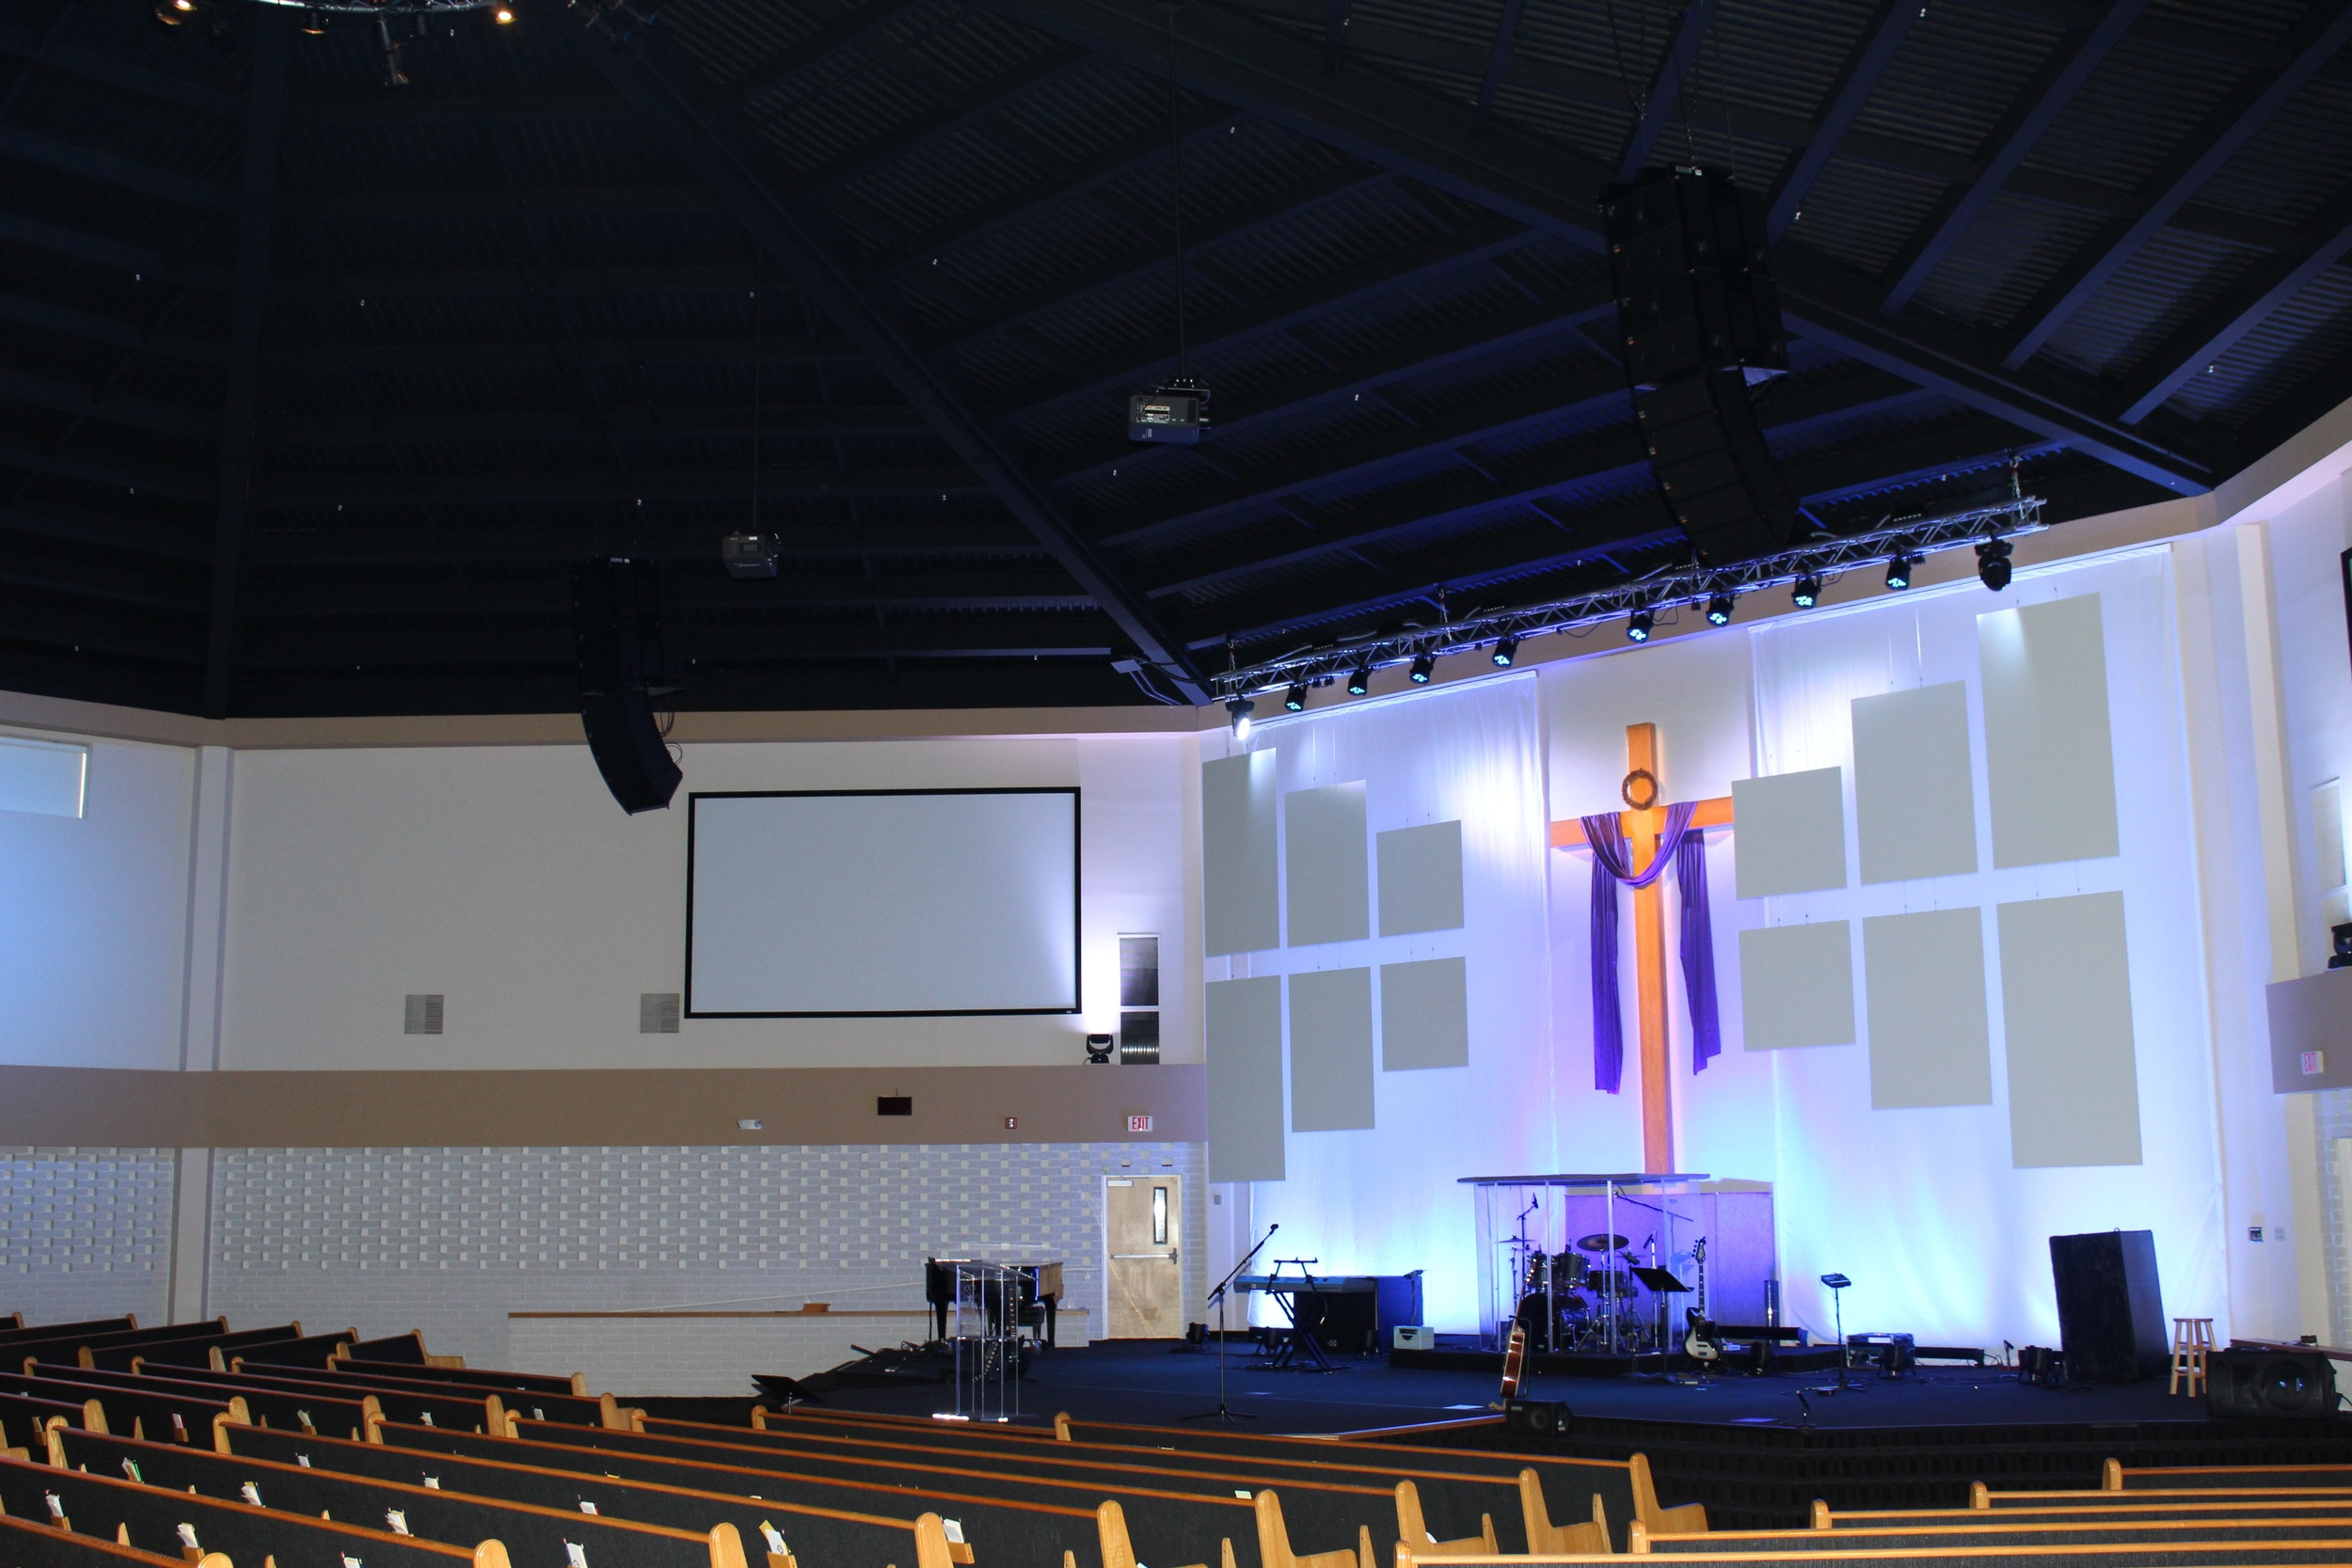 Chesapeake_Christian_Fellowship_Church_05.jpg